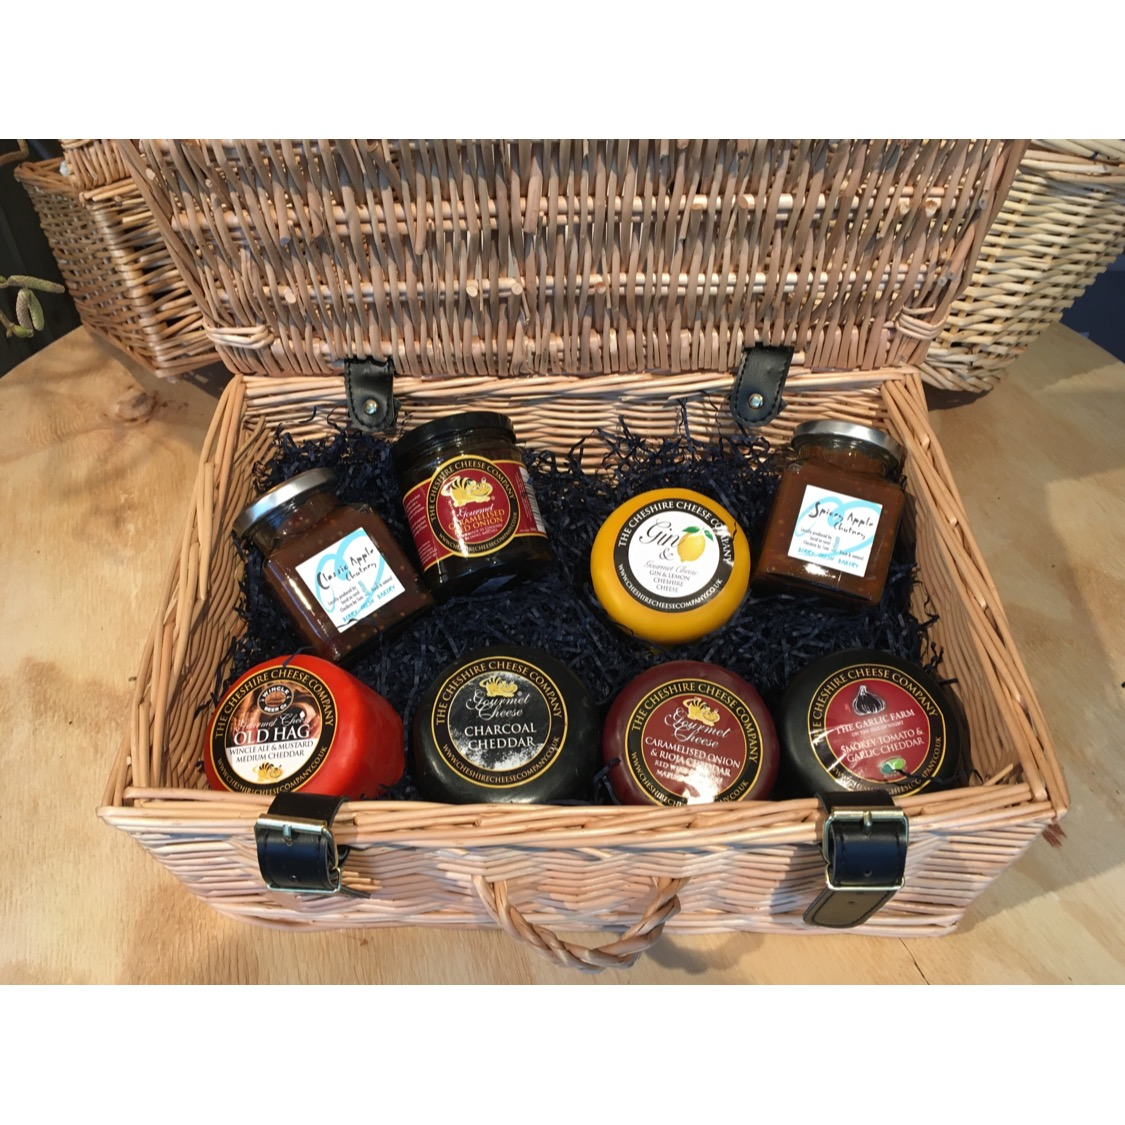 Large Luxury Cheese Hamper (Suitcase) - Sold Out - Why not build your own!?